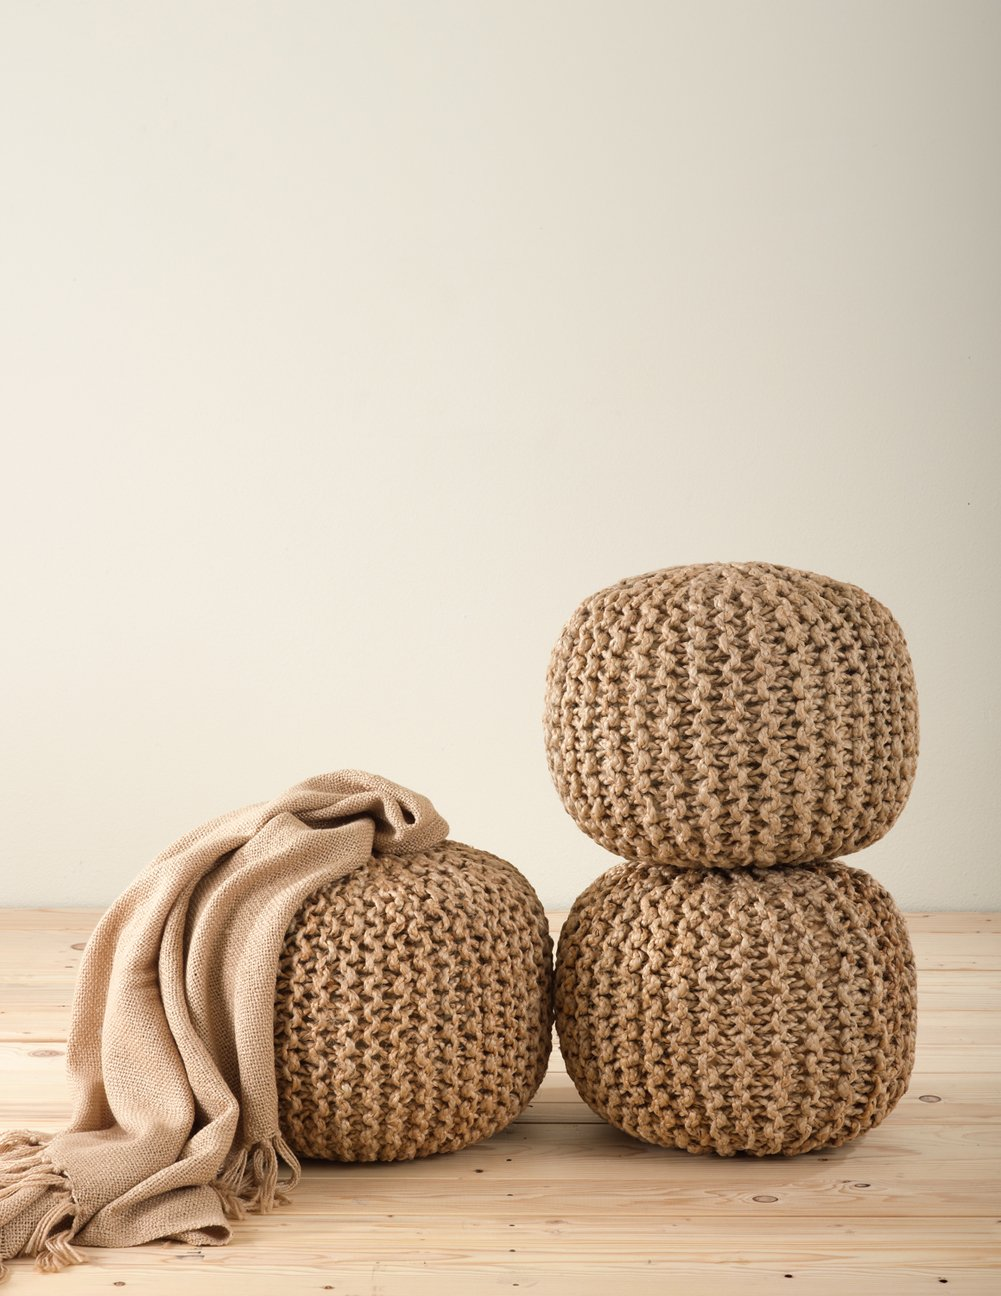 fenncostyles.com Chic Knitted Design Jute Pouf Ottoman – Natural – 18 Dia x 14 High – One Piece